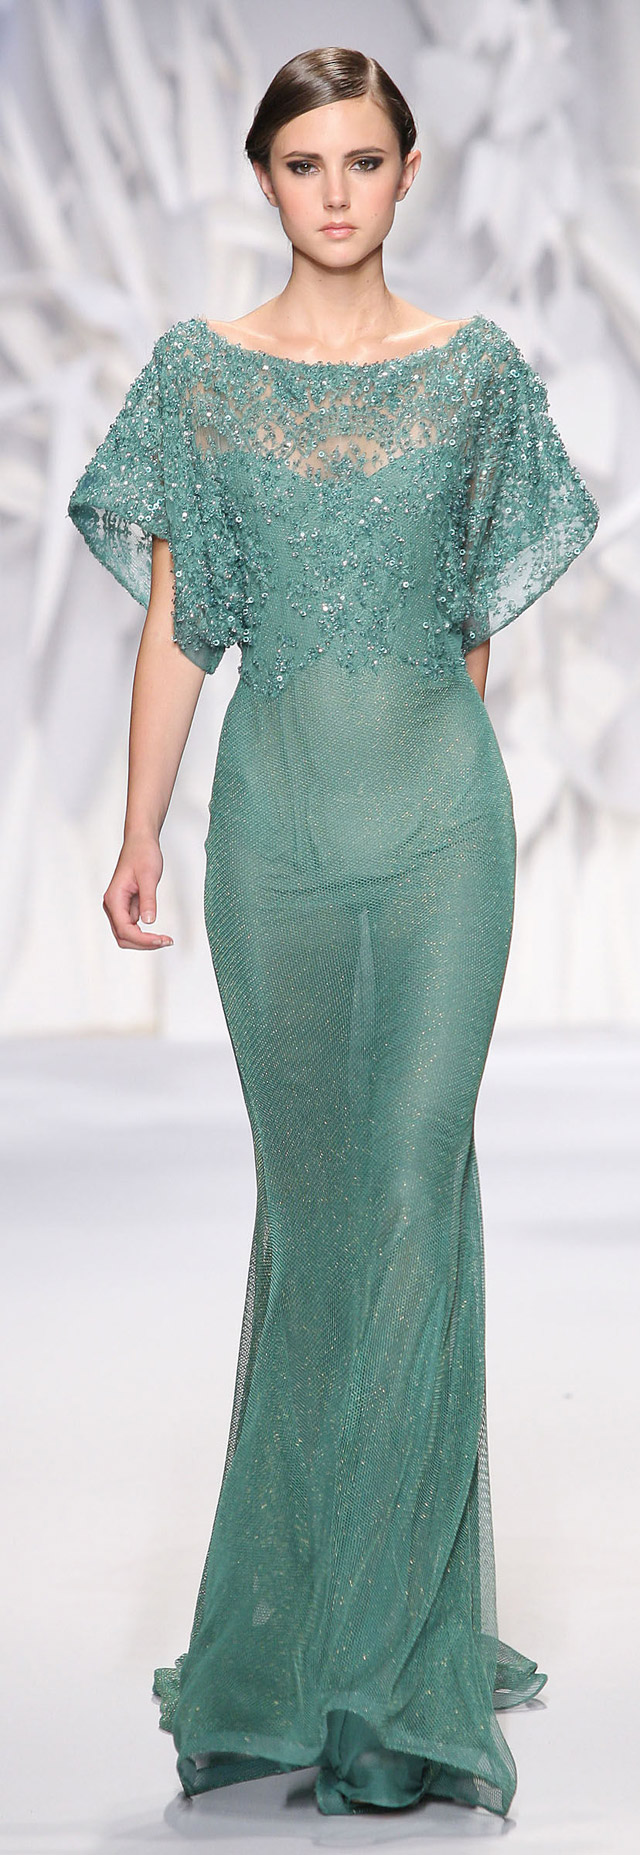 Abed Mahfouz Haute Couture Fall-Winter 2013-2014 (11)